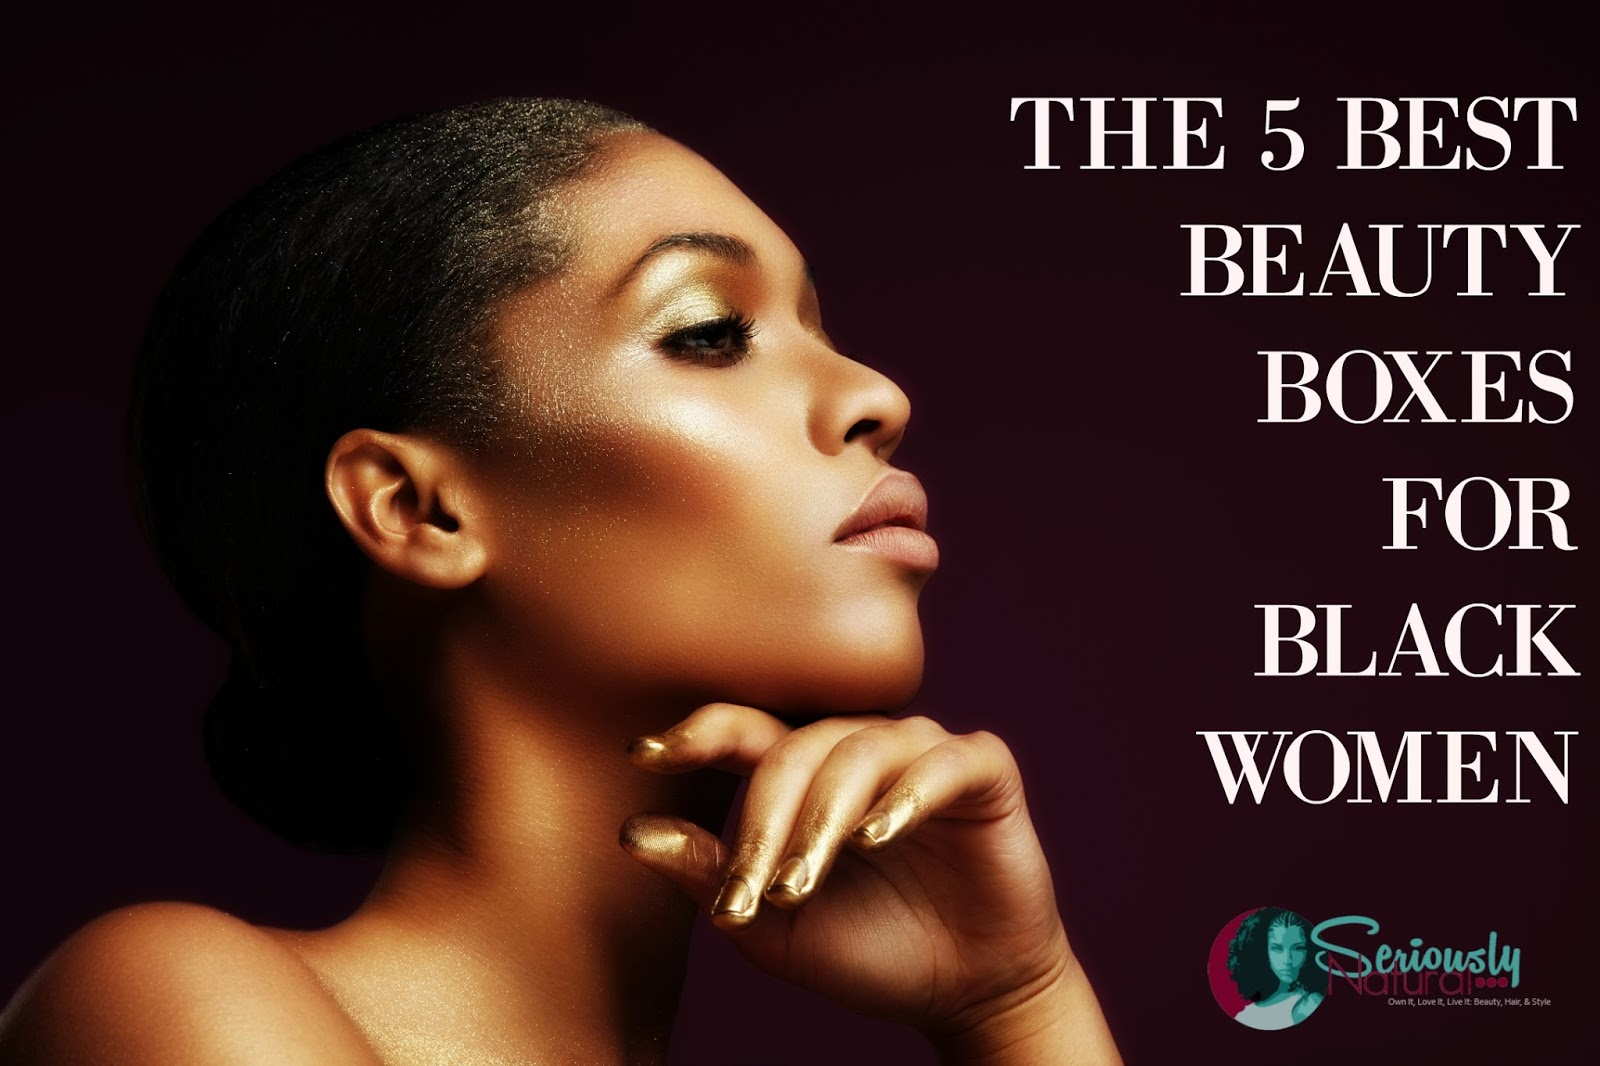 THE 5 BEST BEAUTY BOX SERVICES FOR BLACK WOMEN